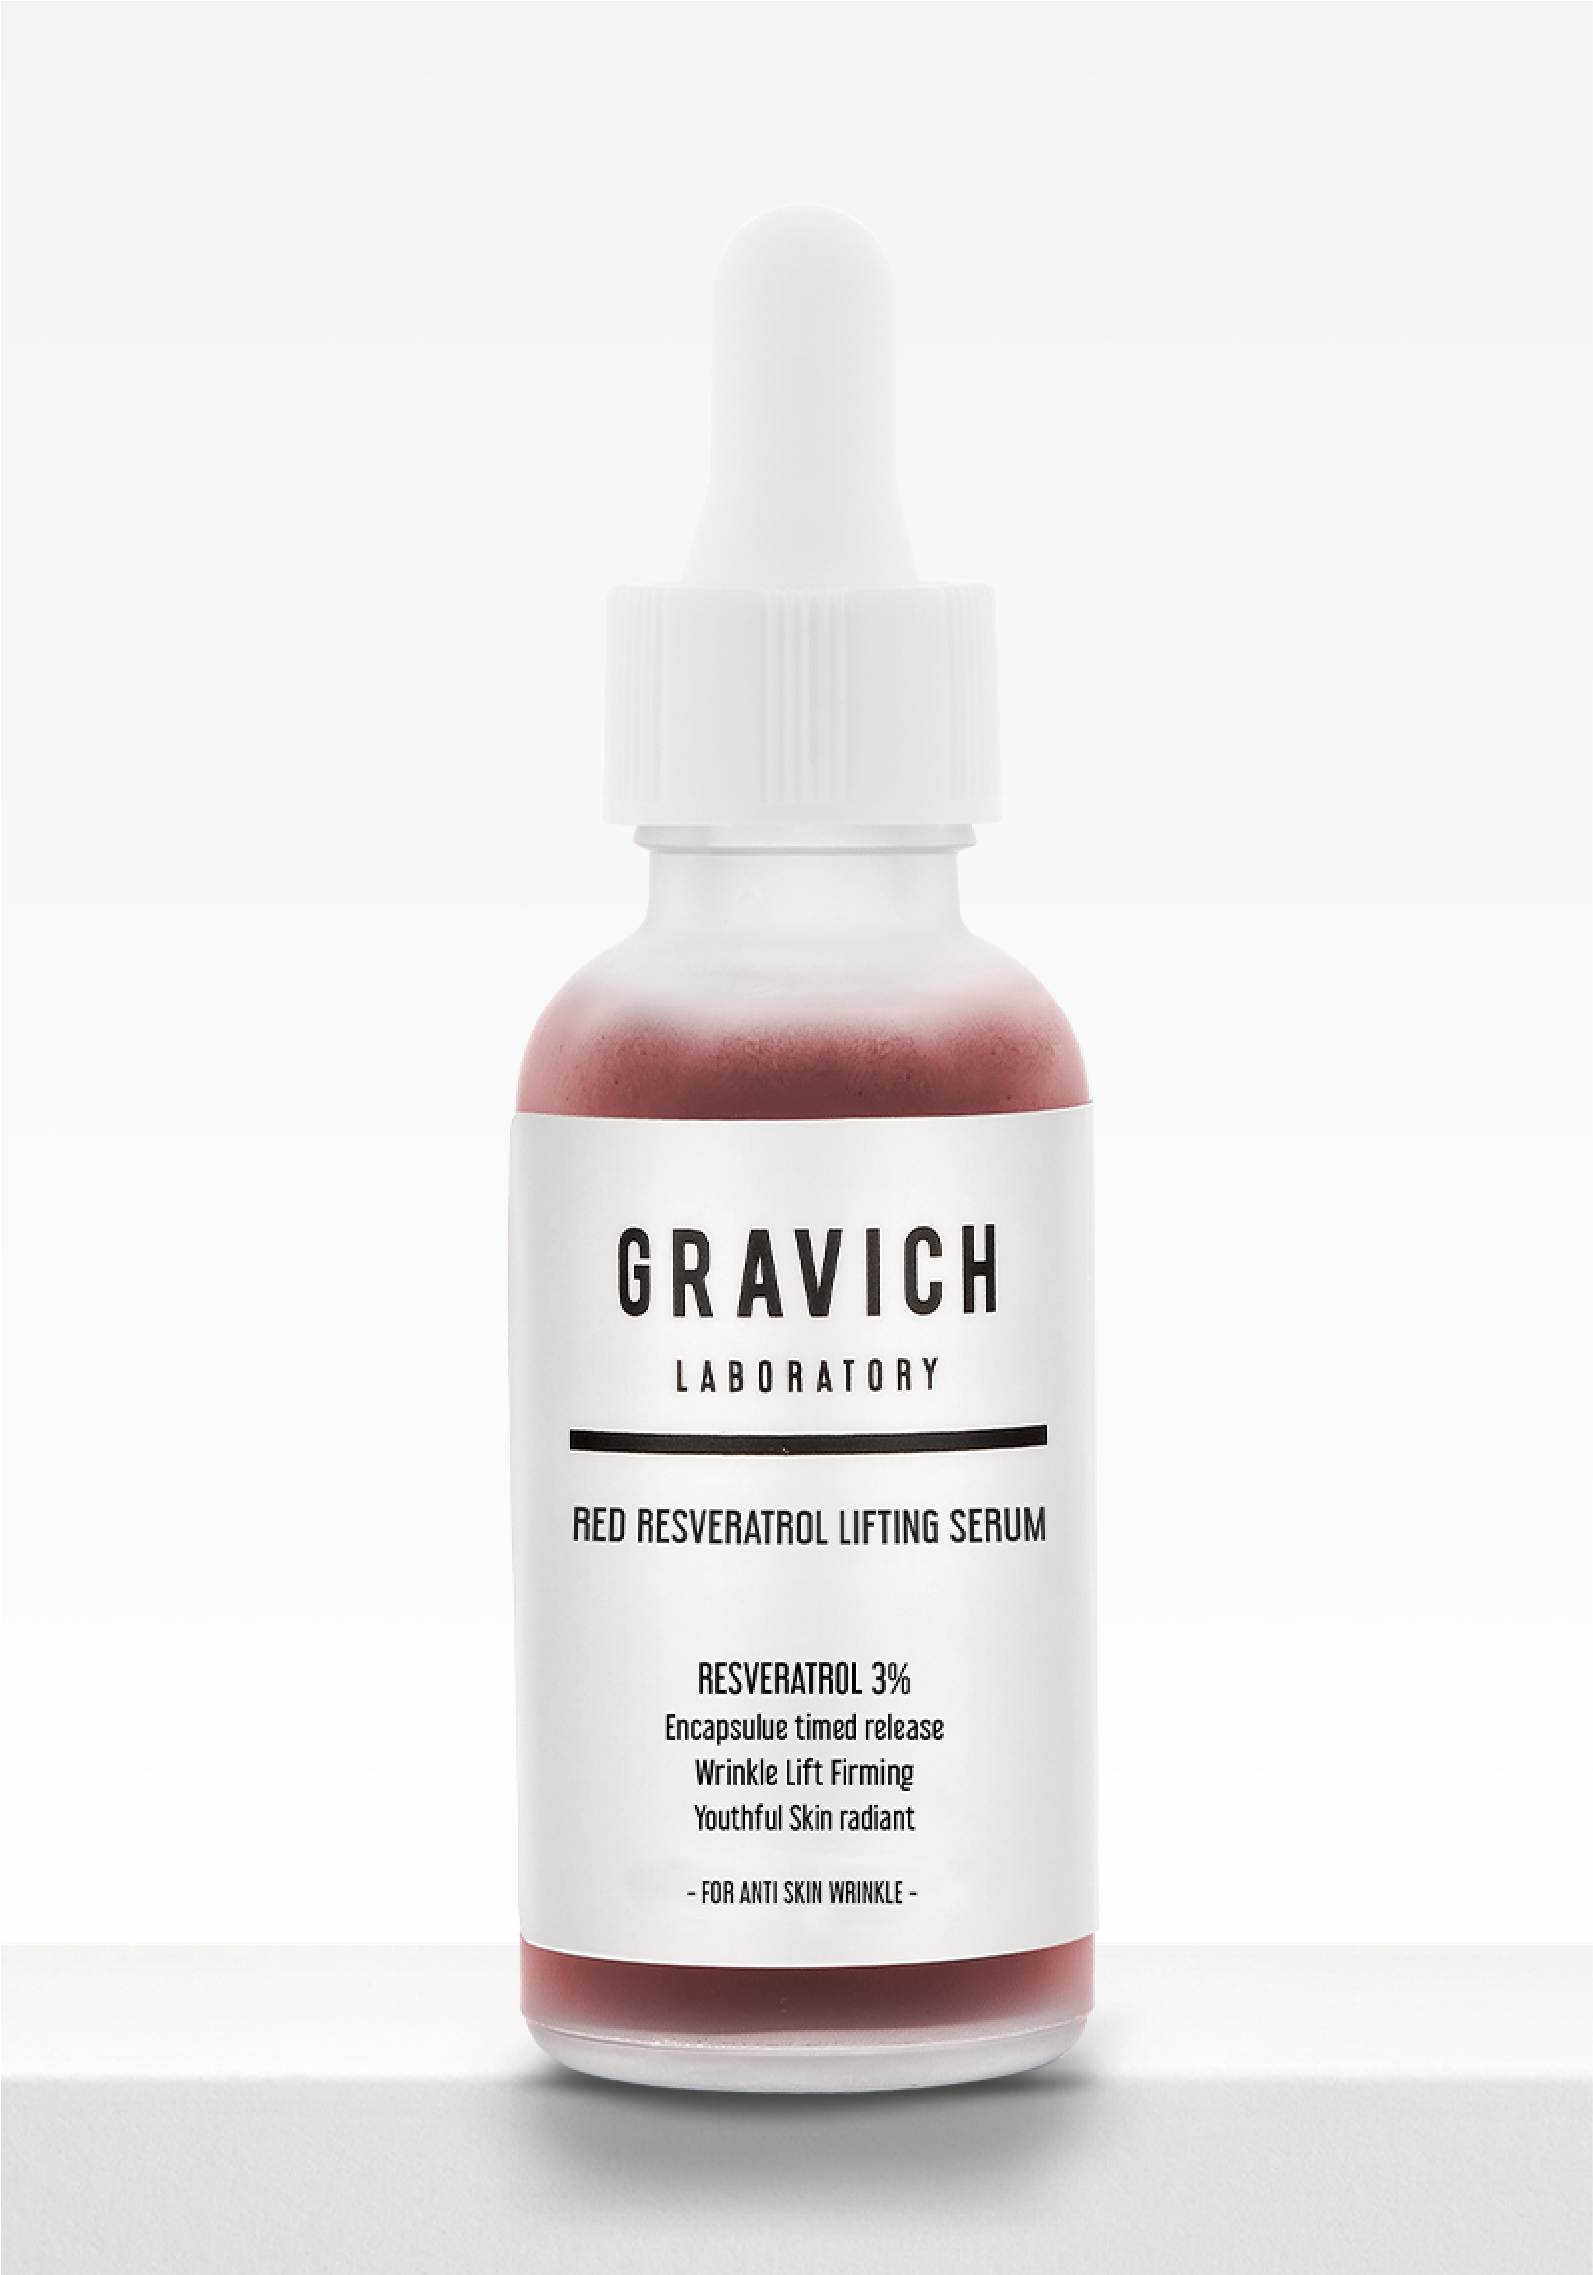 Gravich Red Resveratrol Lifting Serum 30 Ml